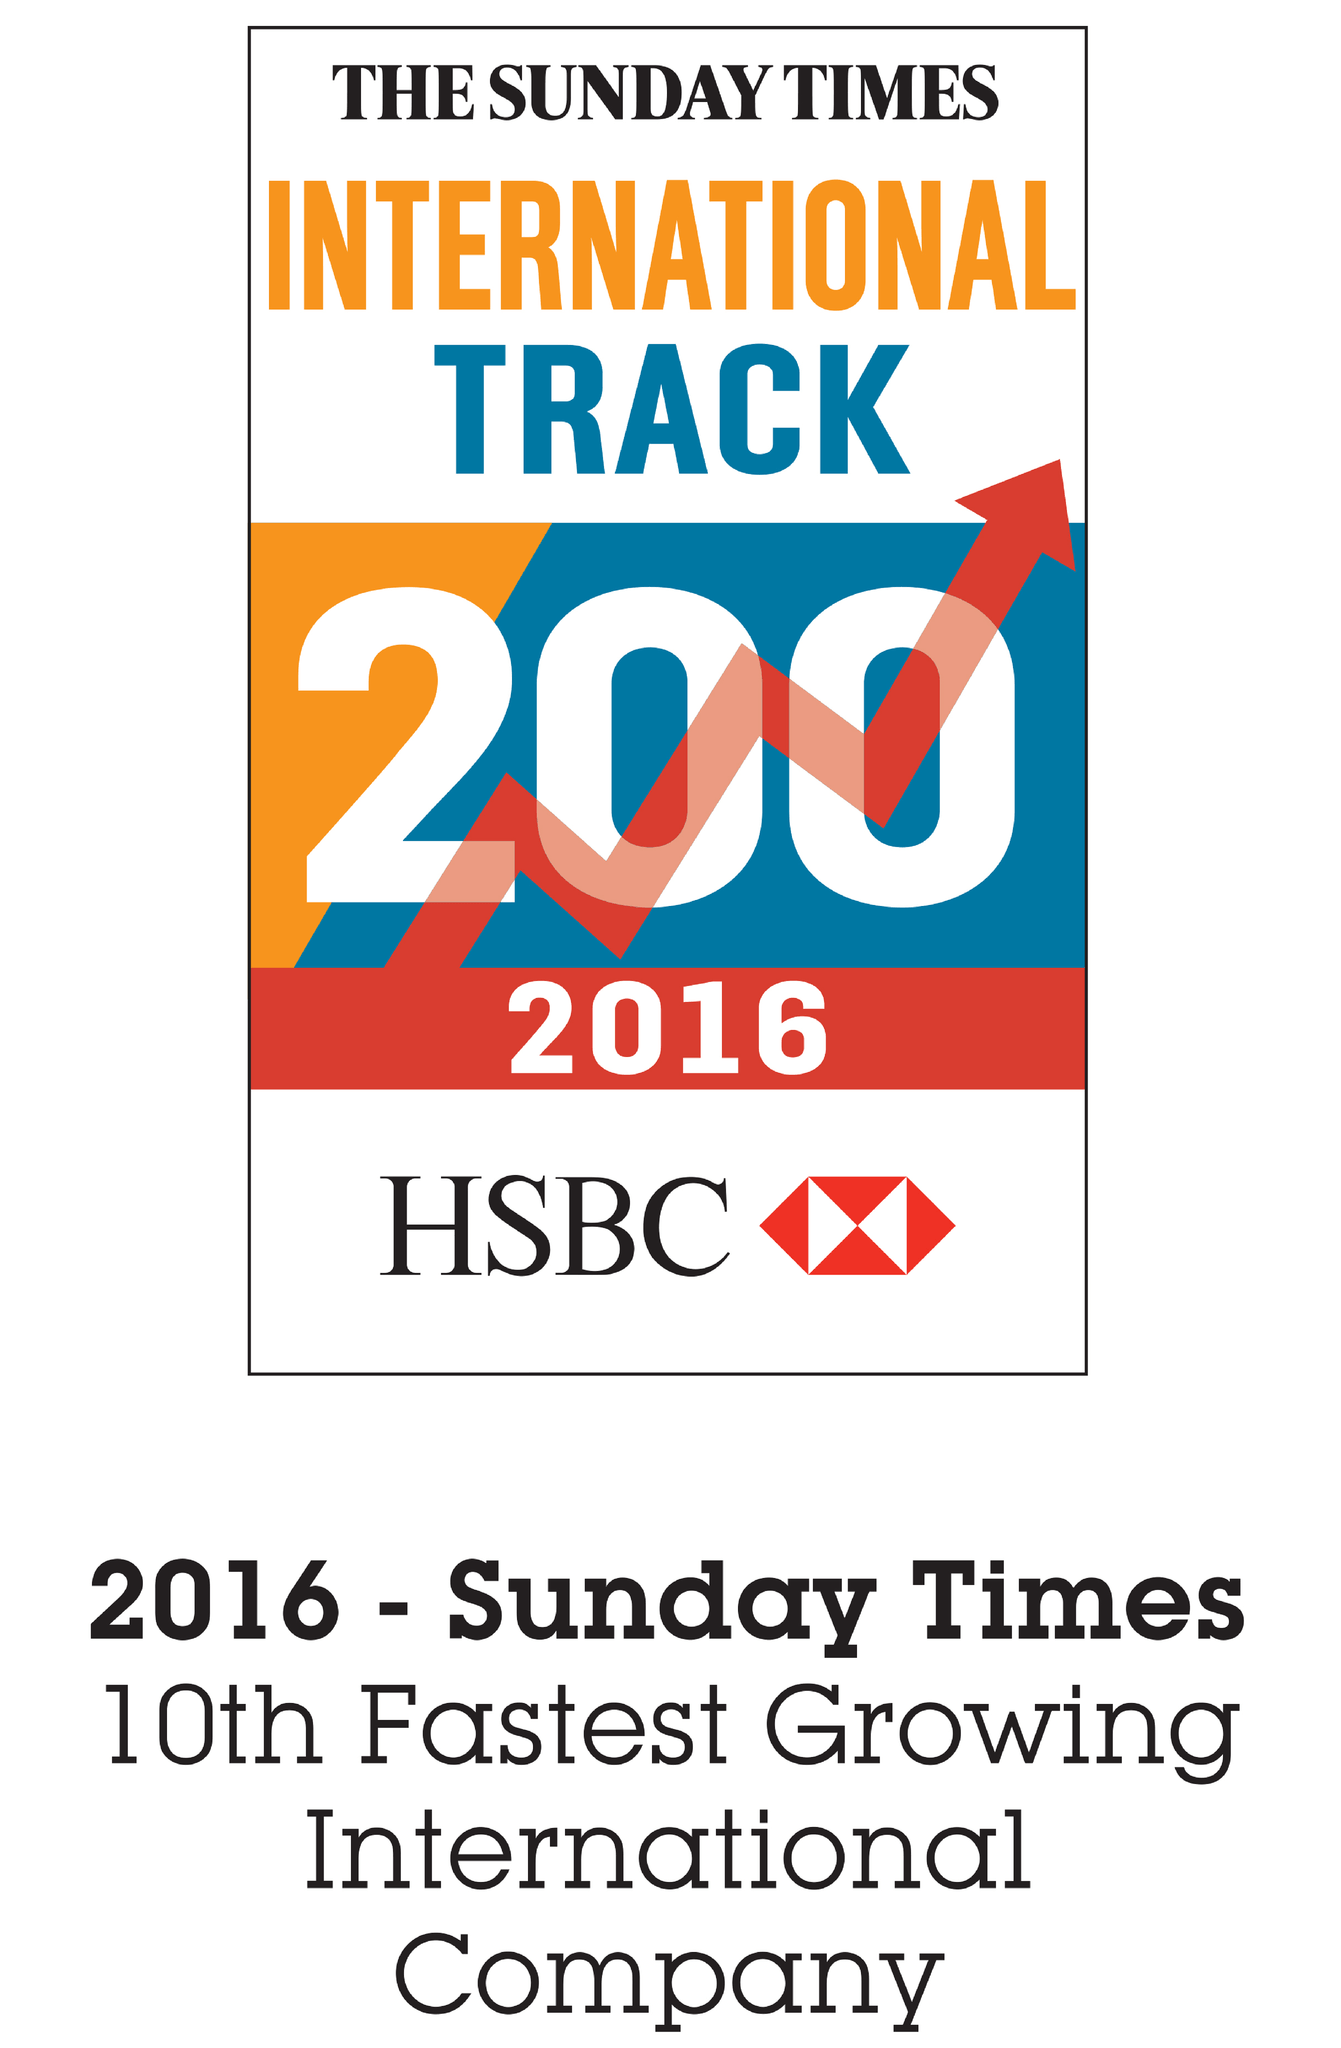 SundayTimes_10thFastestGrowing_Int_2016